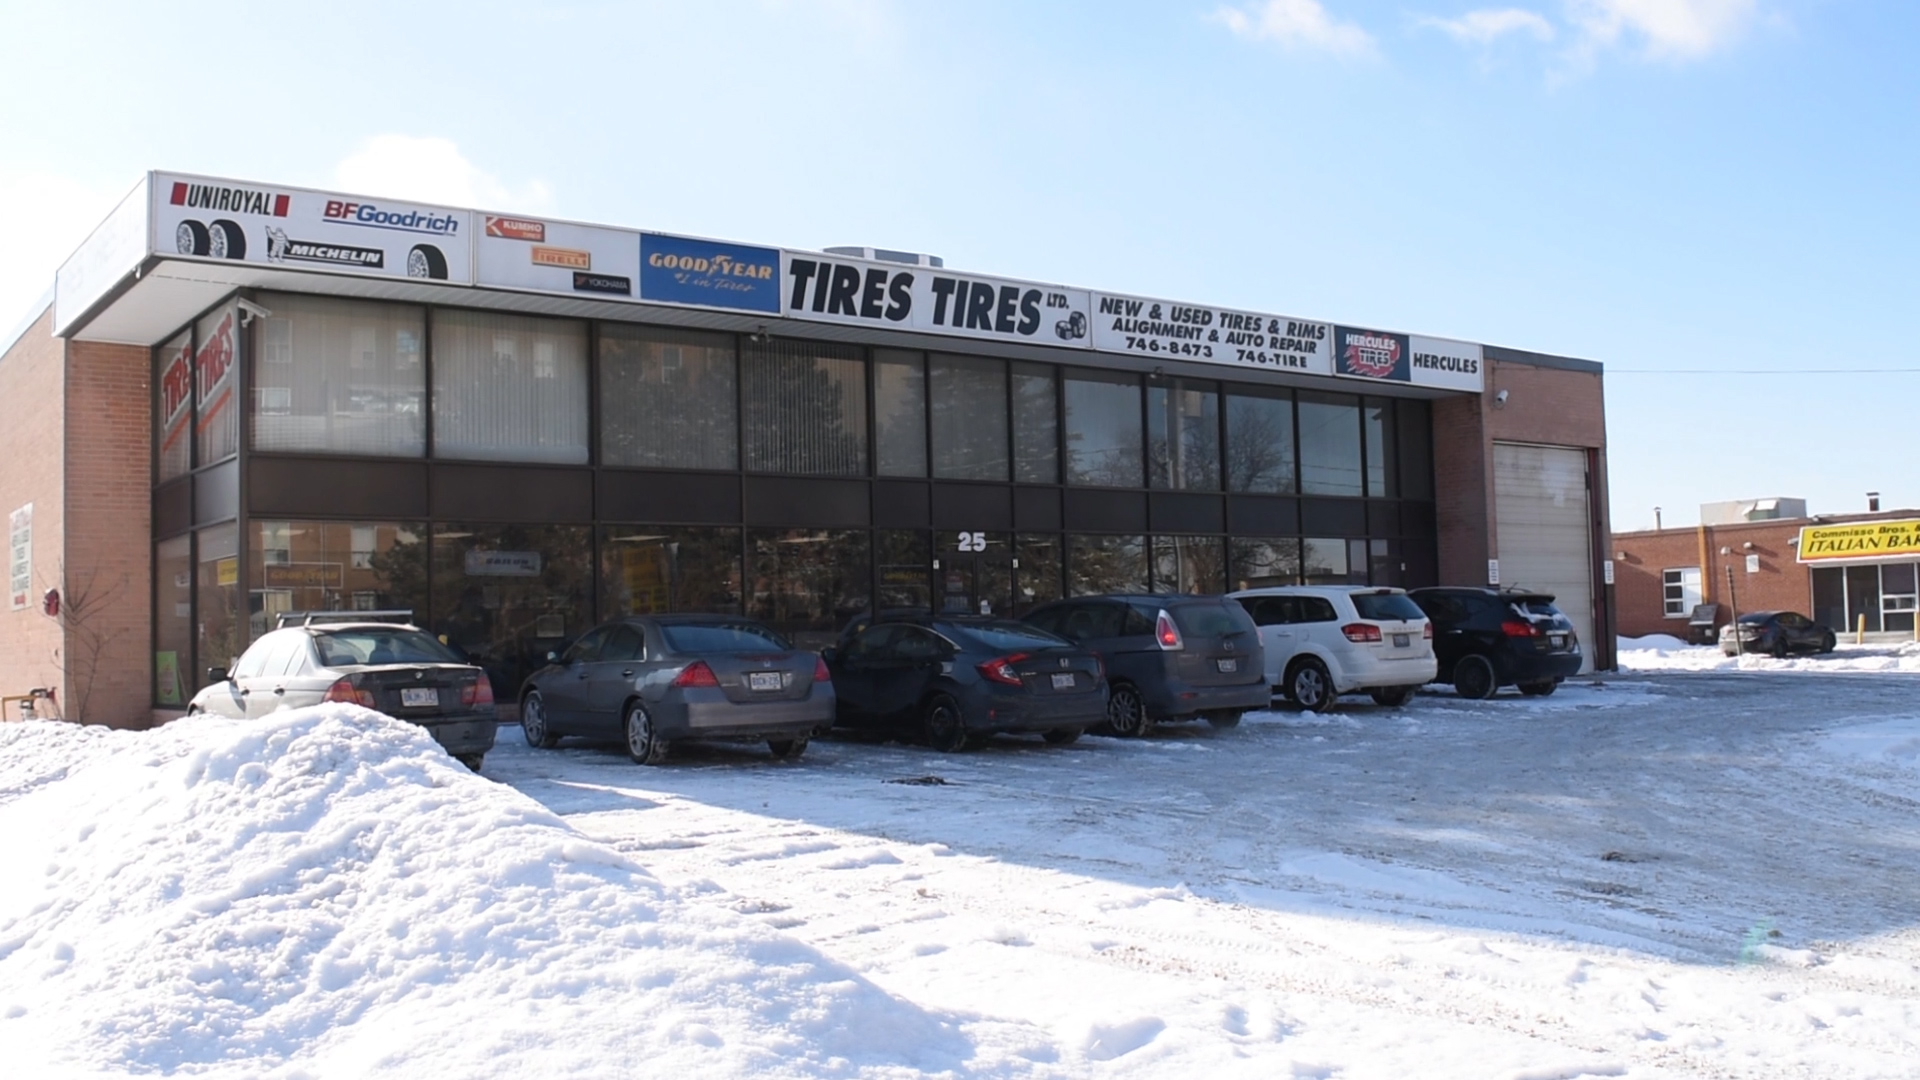 TIRES TIRES LIMITED | COMMERCIAL - Since 1989, Tires Tires Ltd has served the Toronto, North York, and Vaughan, Ontario area in offering great deals on tires.